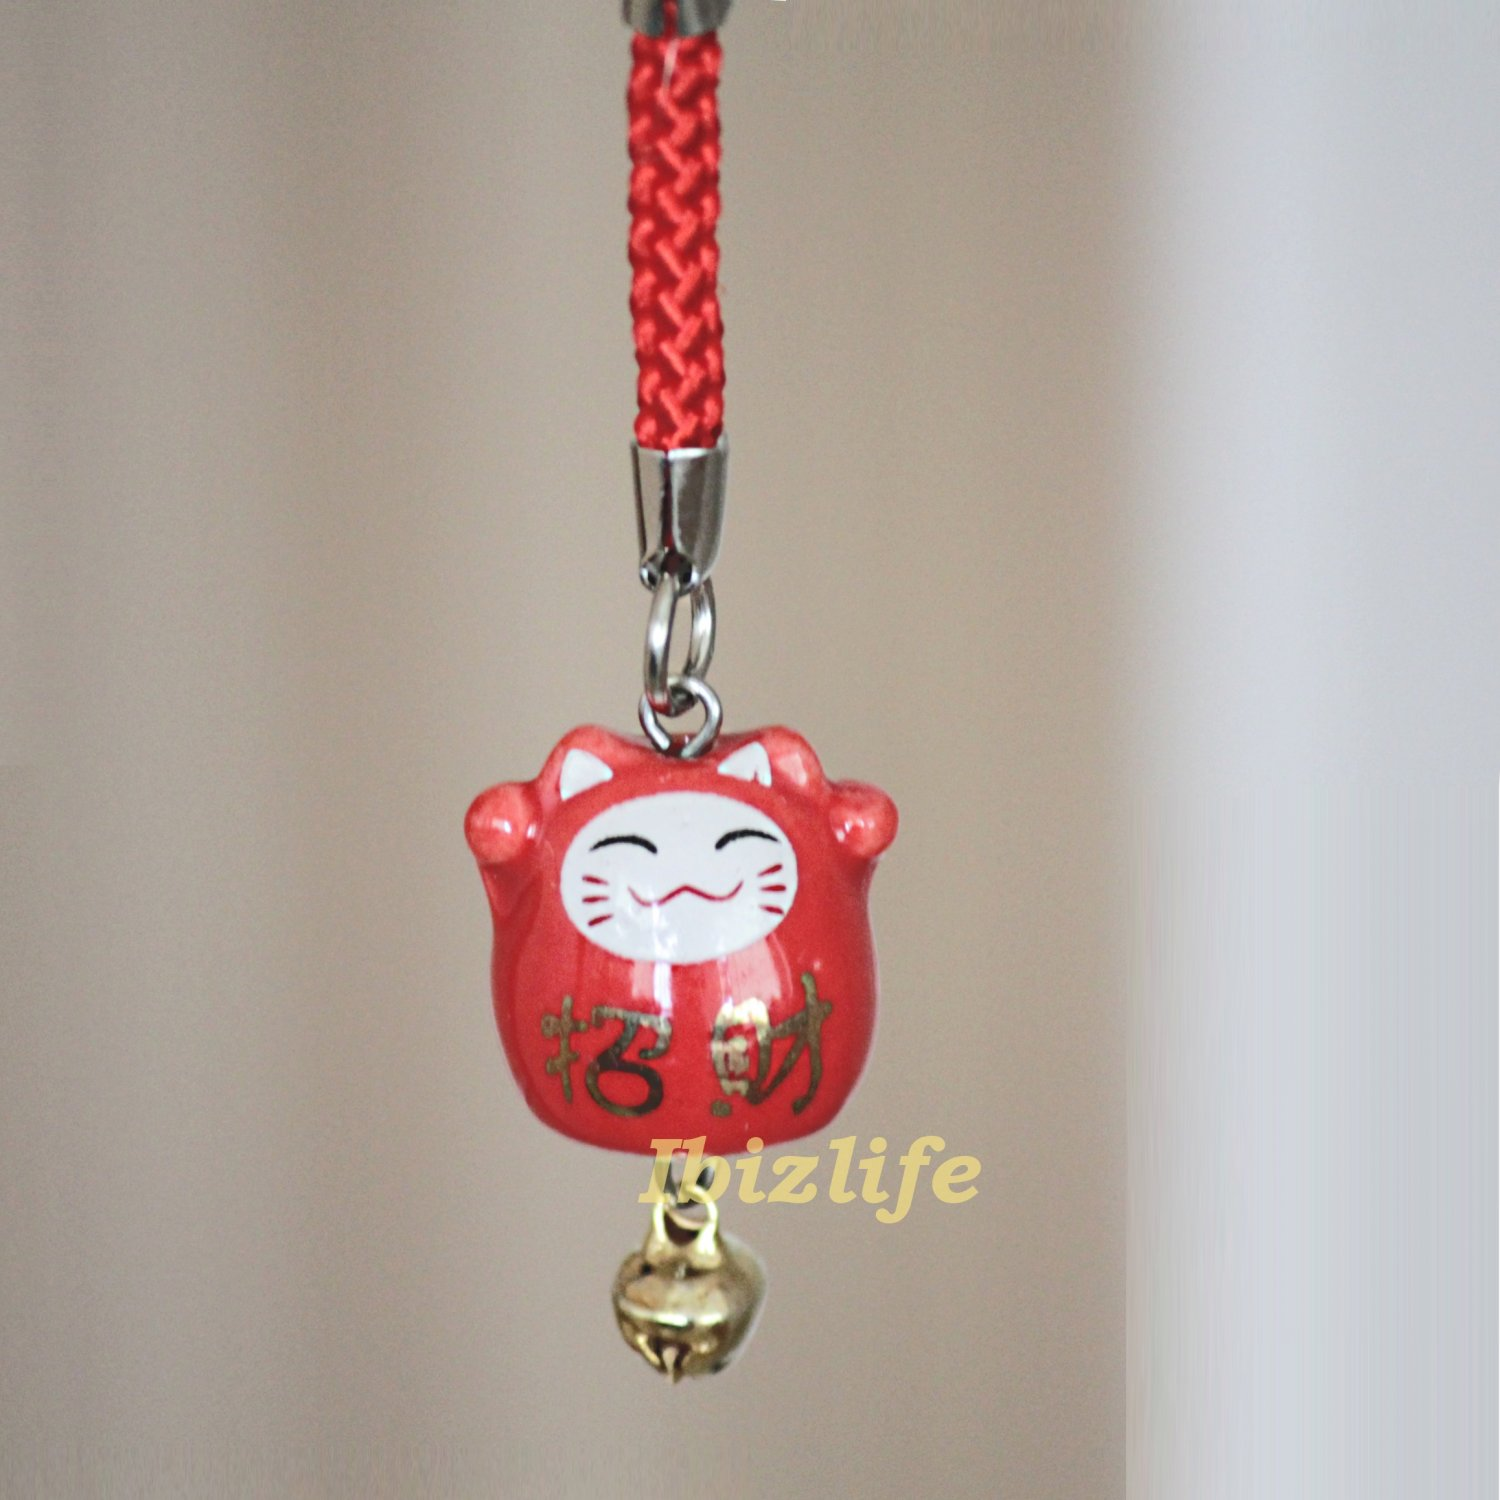 Blessing Lucky BELL CHARM- (Maneki Neko) with Chinese Blessing words WEALTH (bbc04)